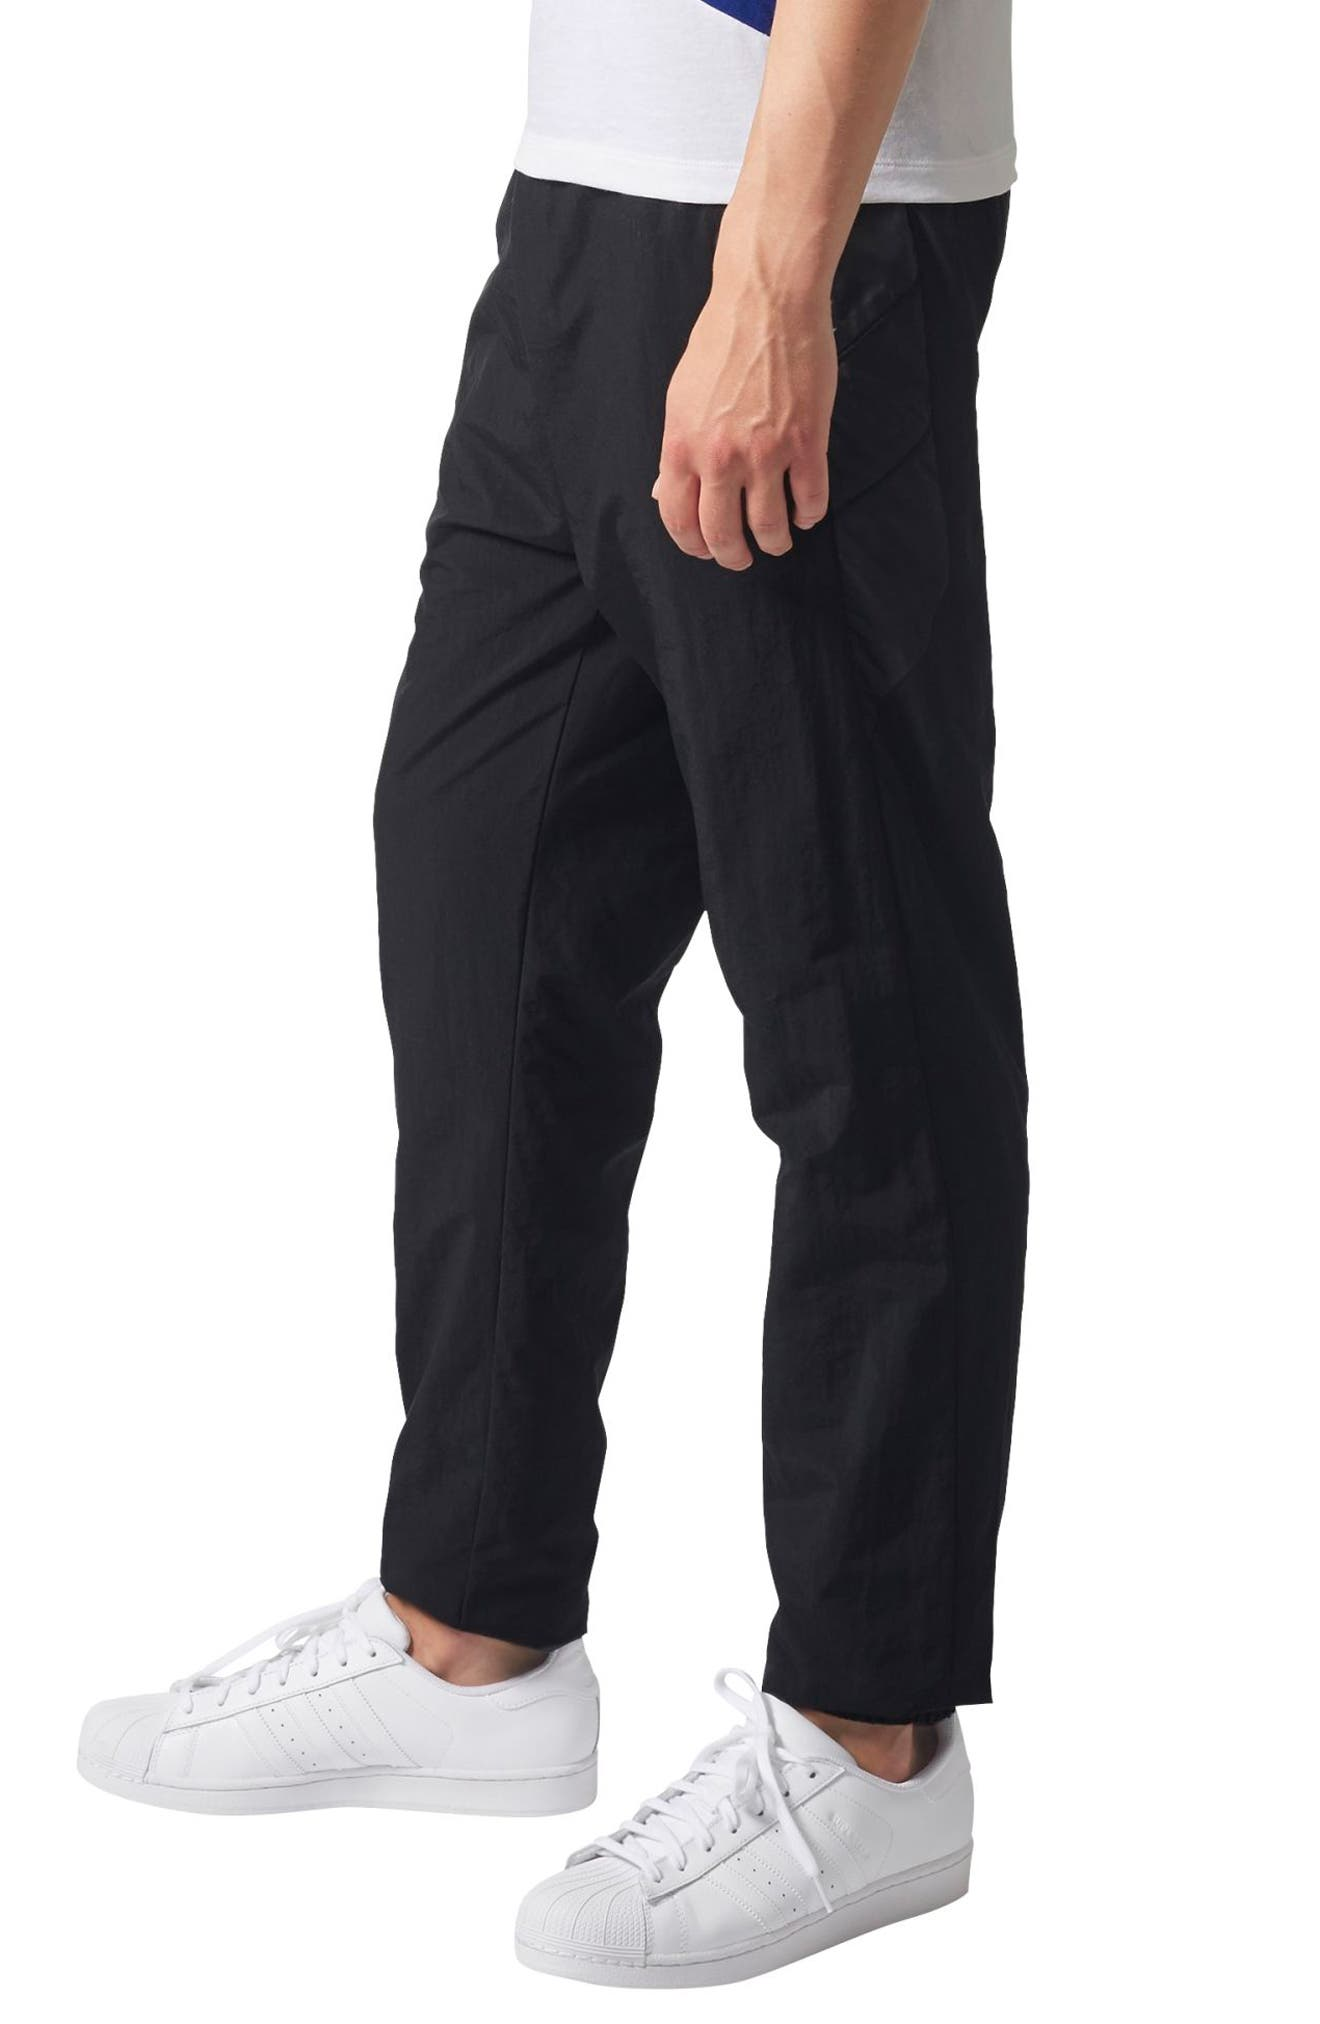 Originals Slim Tapered Pants,                             Alternate thumbnail 3, color,                             001